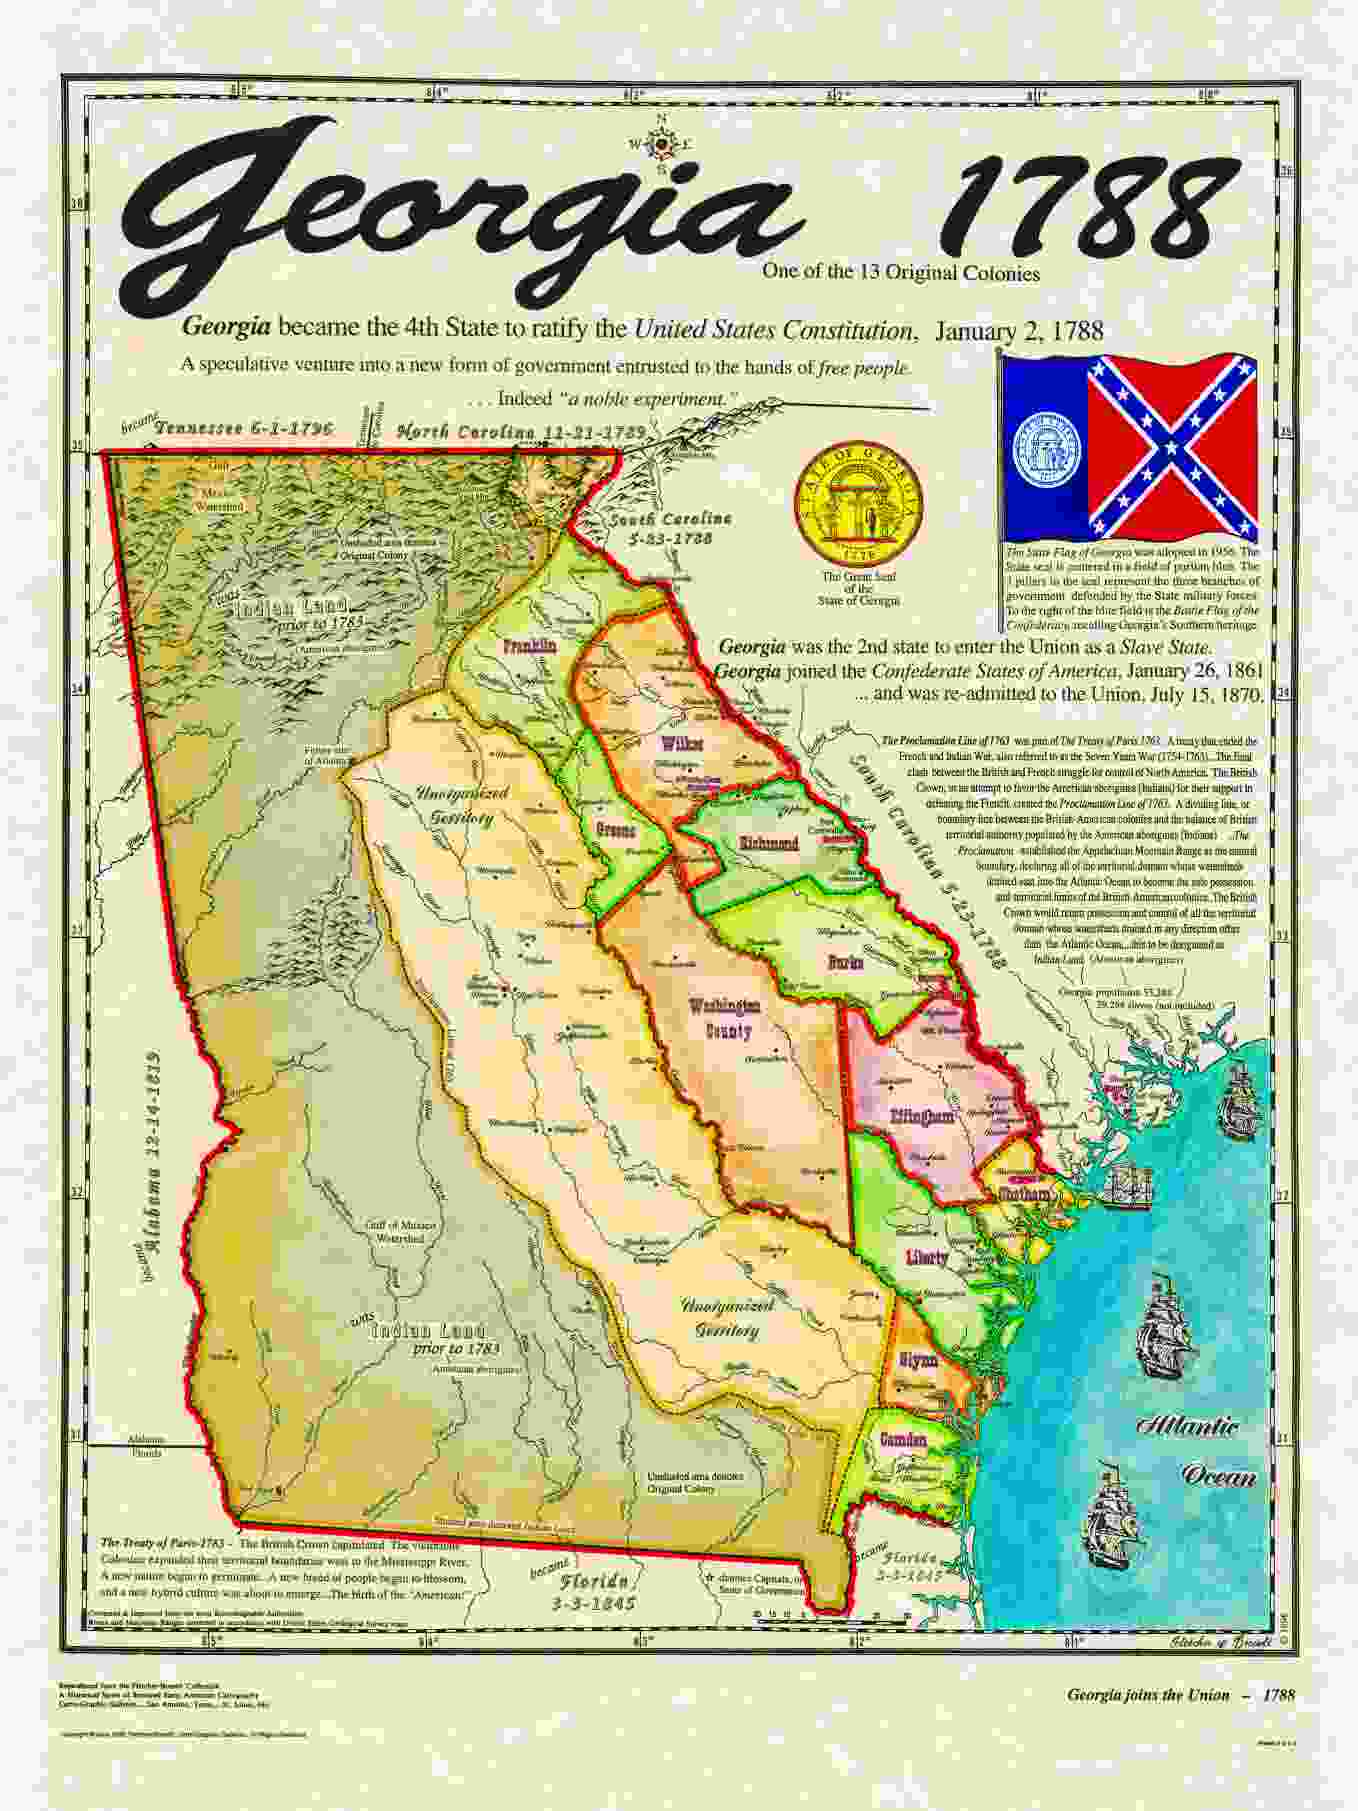 Georgia Was A Part Of The Southern Colonies Www Historical Us Maps Com